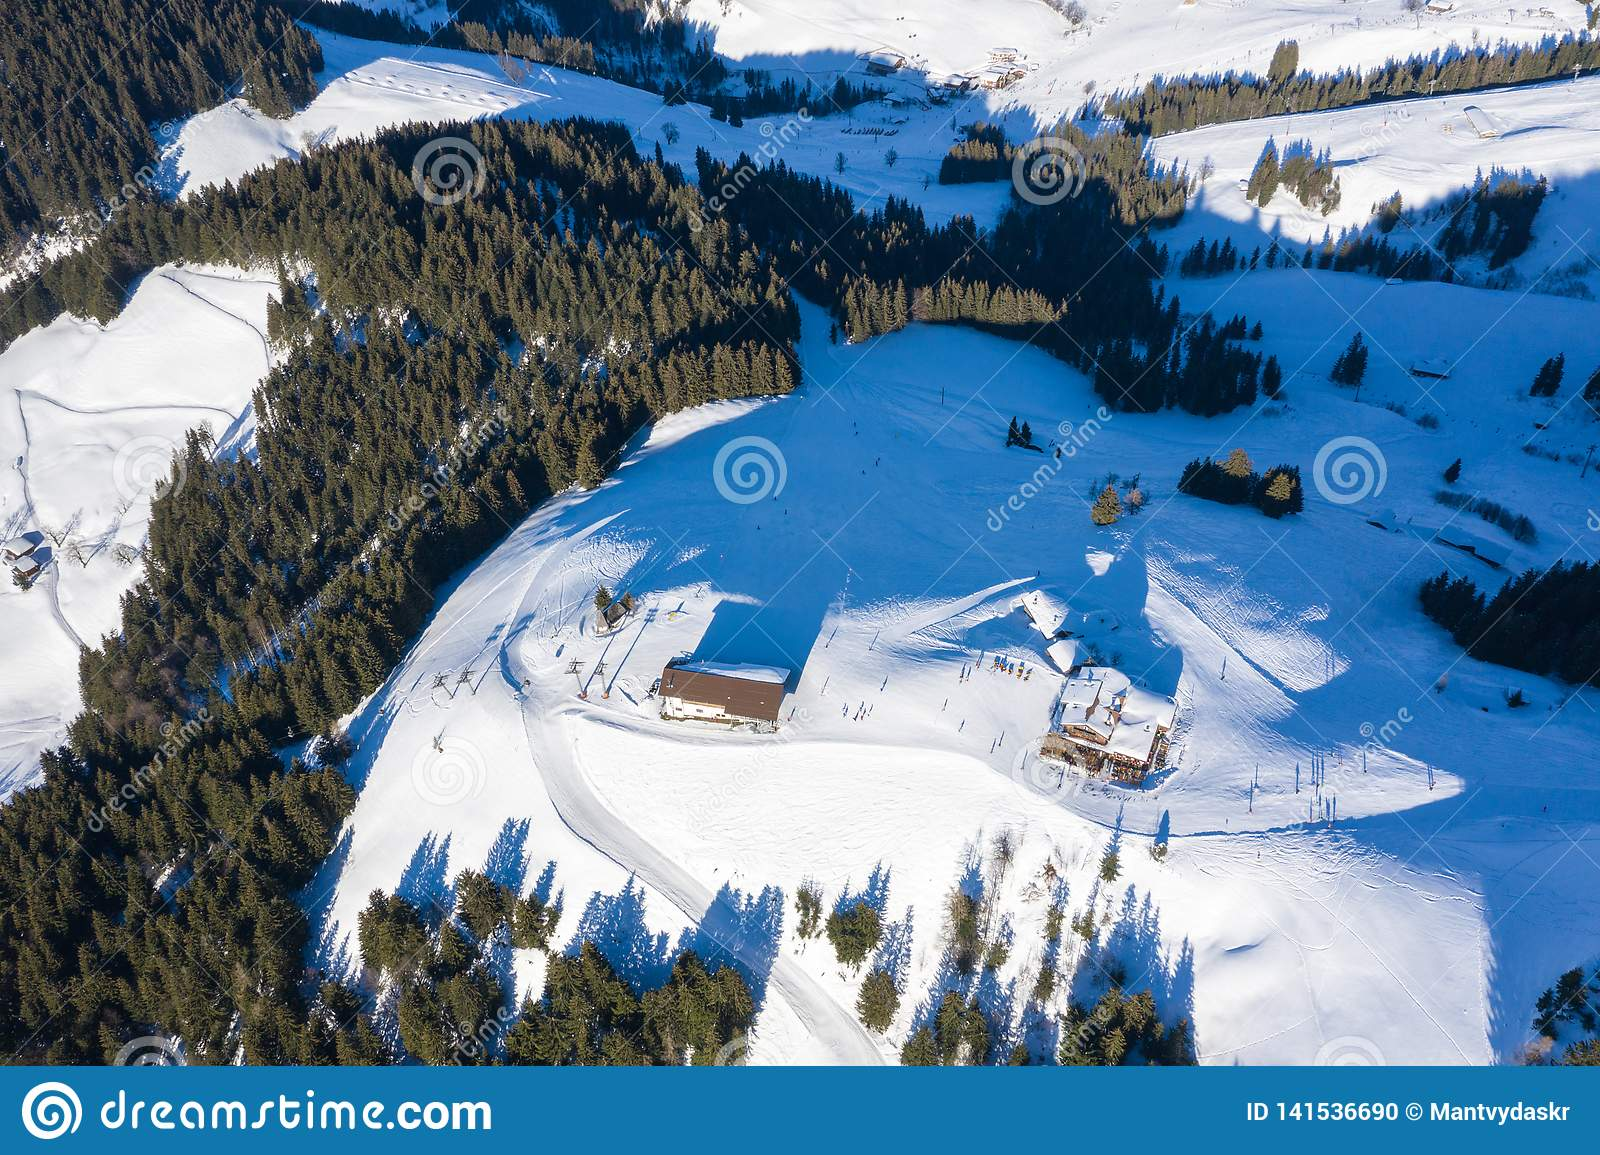 Aerial drone view of mountains,forest and winter ski resort